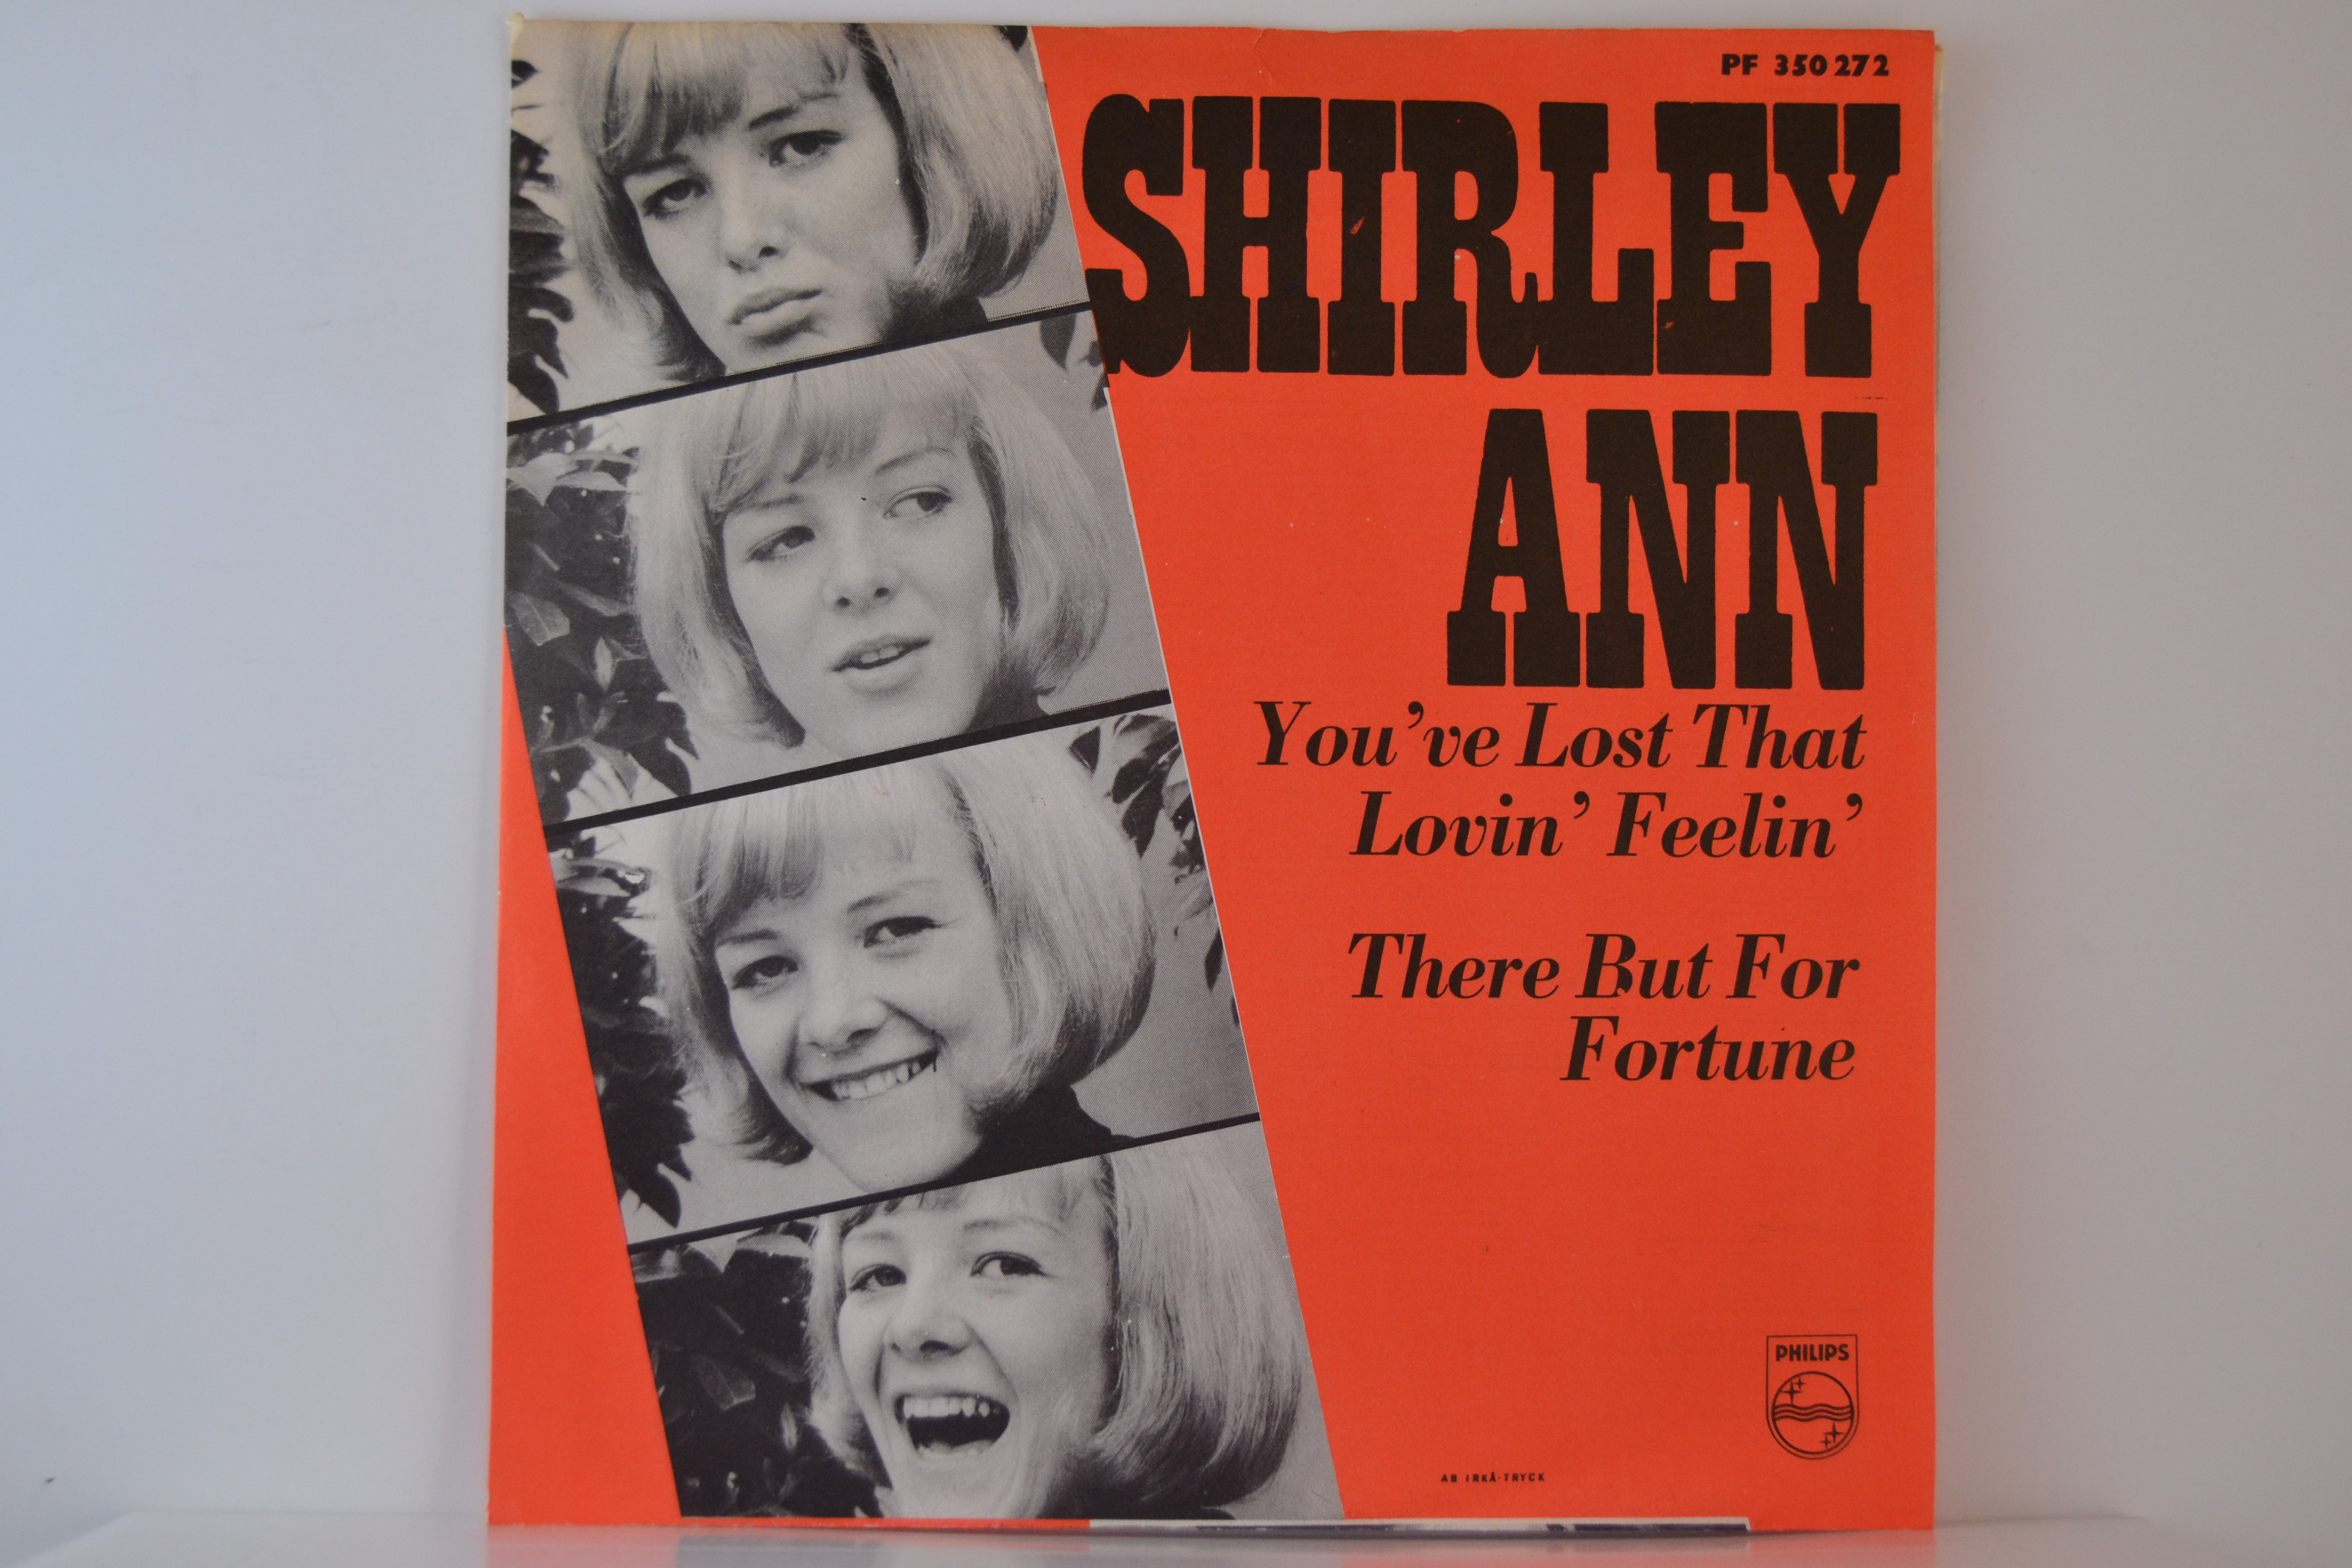 SHIRLEY ANN : You've lost that lovin' feelin' / There but for fortune